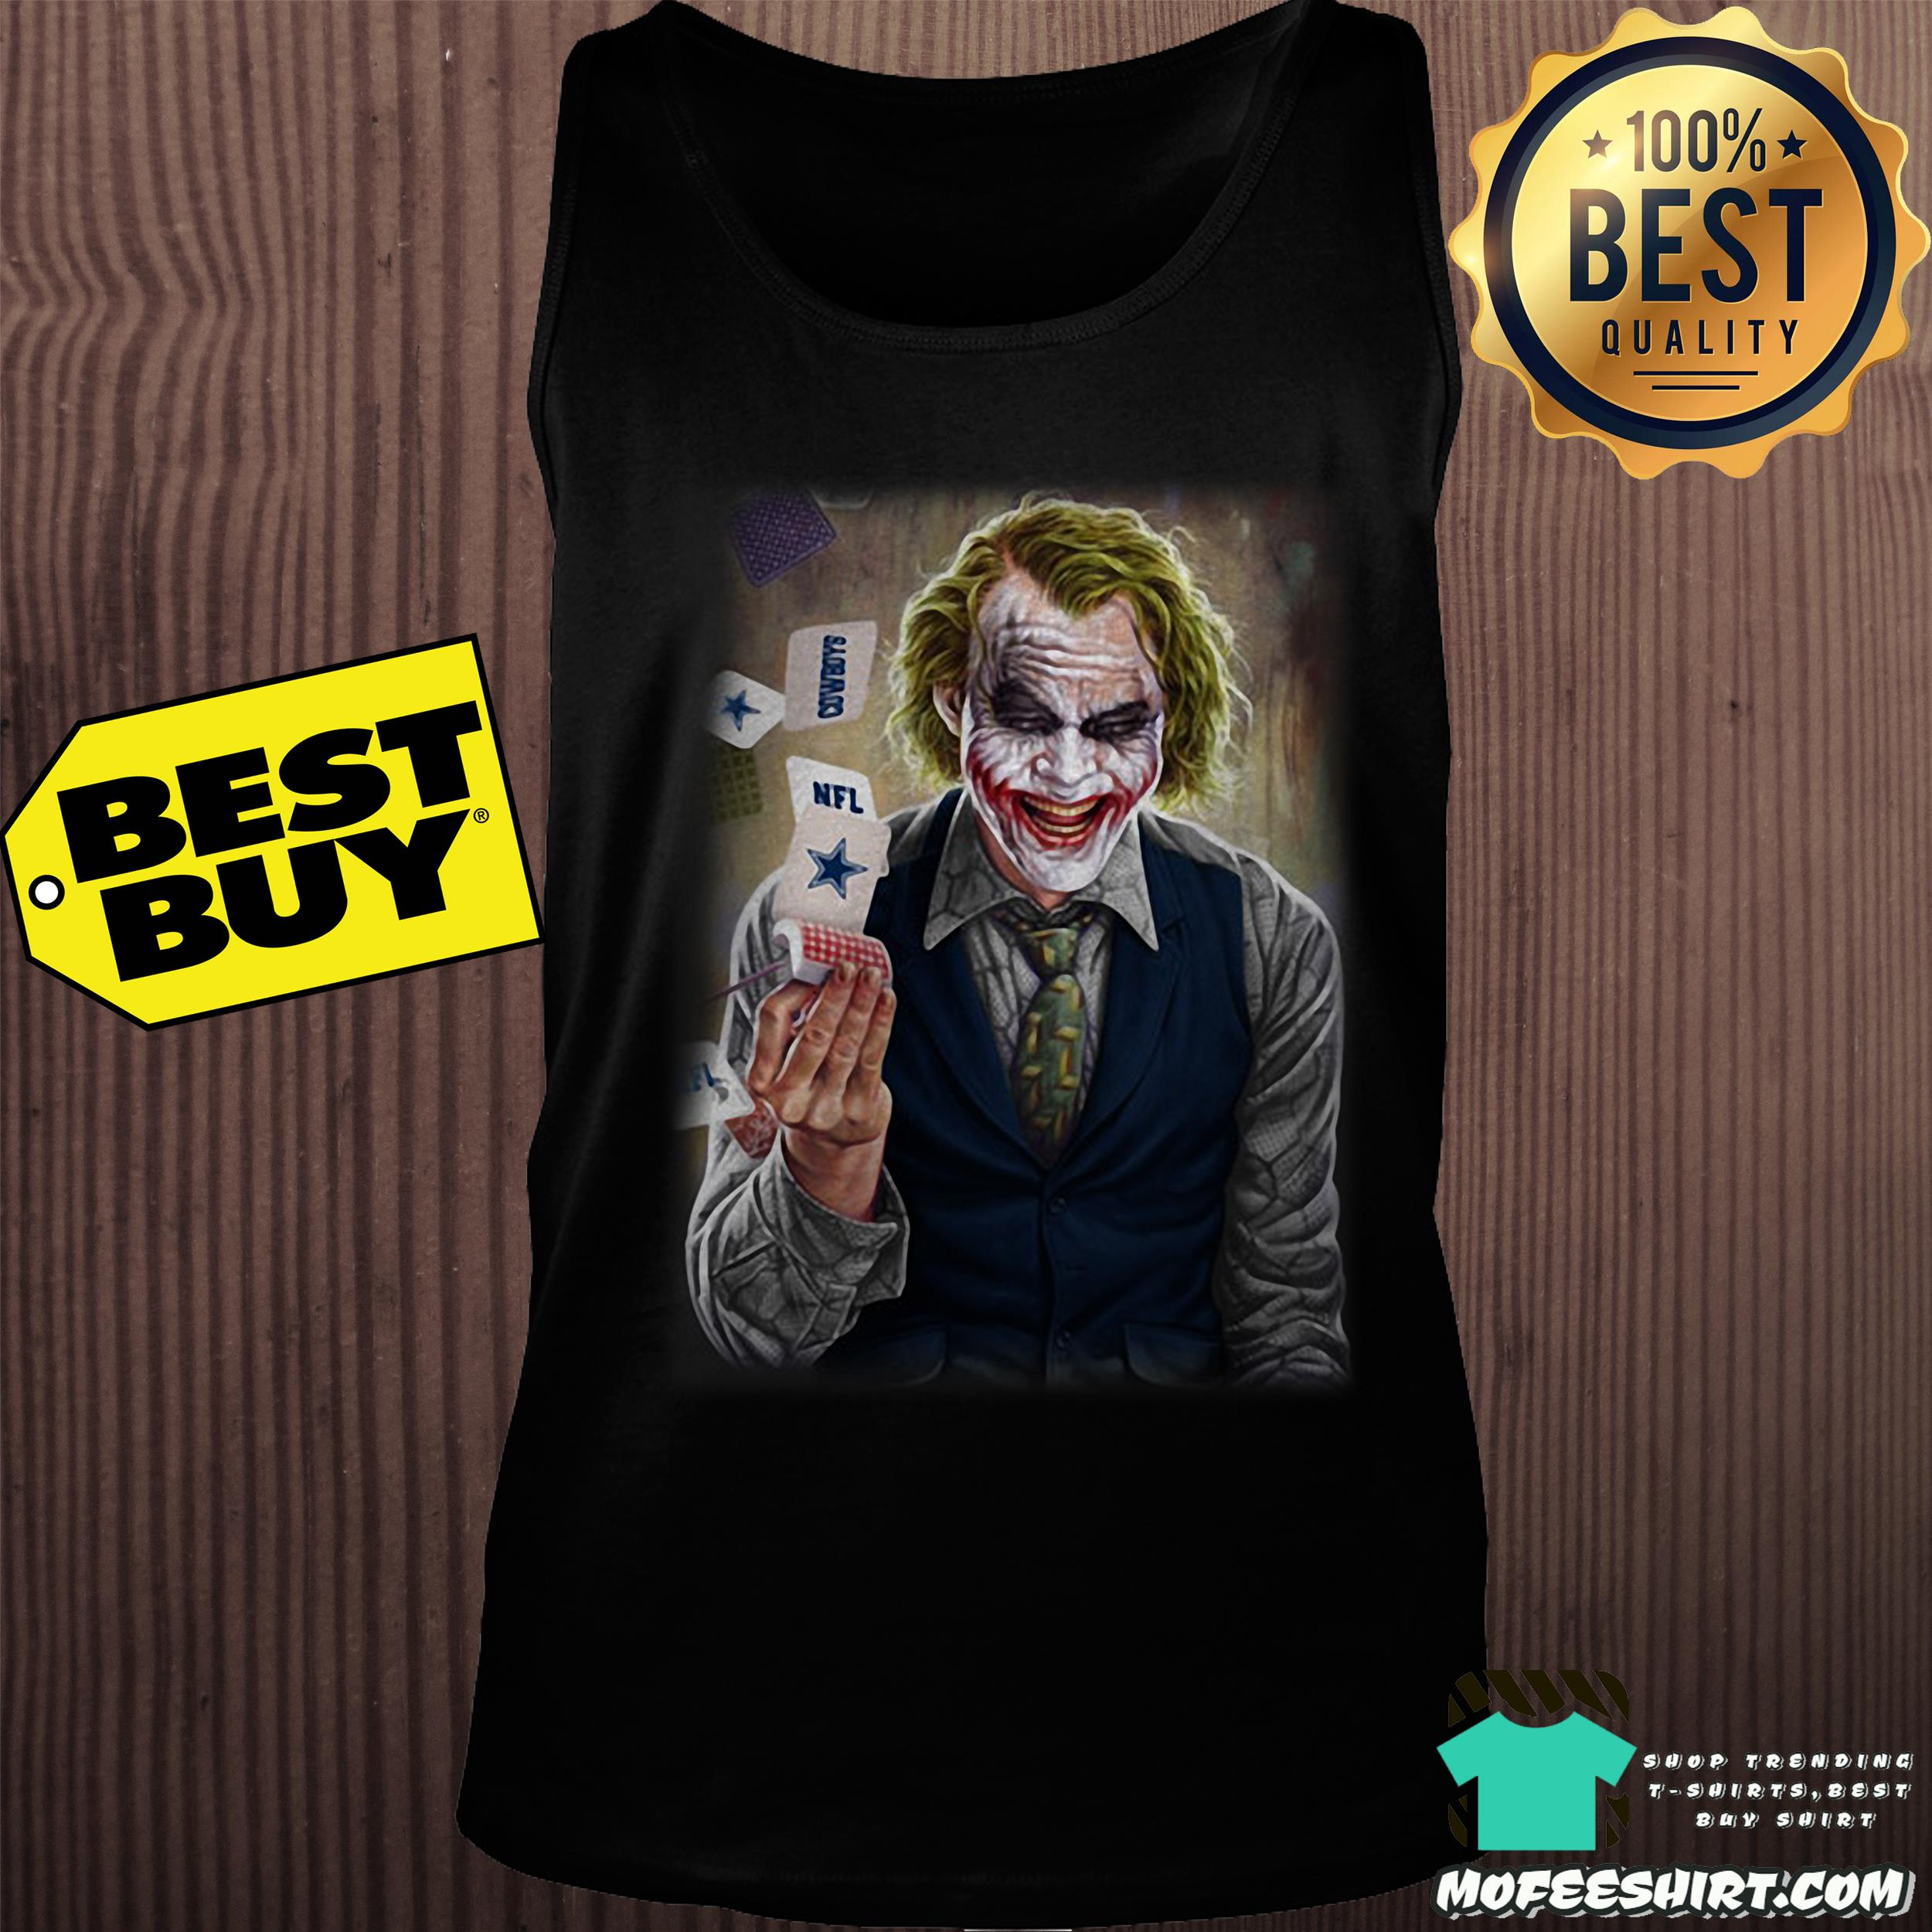 nfl joker playing cards dark knight tank top - NFL Joker Playing Cards Dark Knight shirt